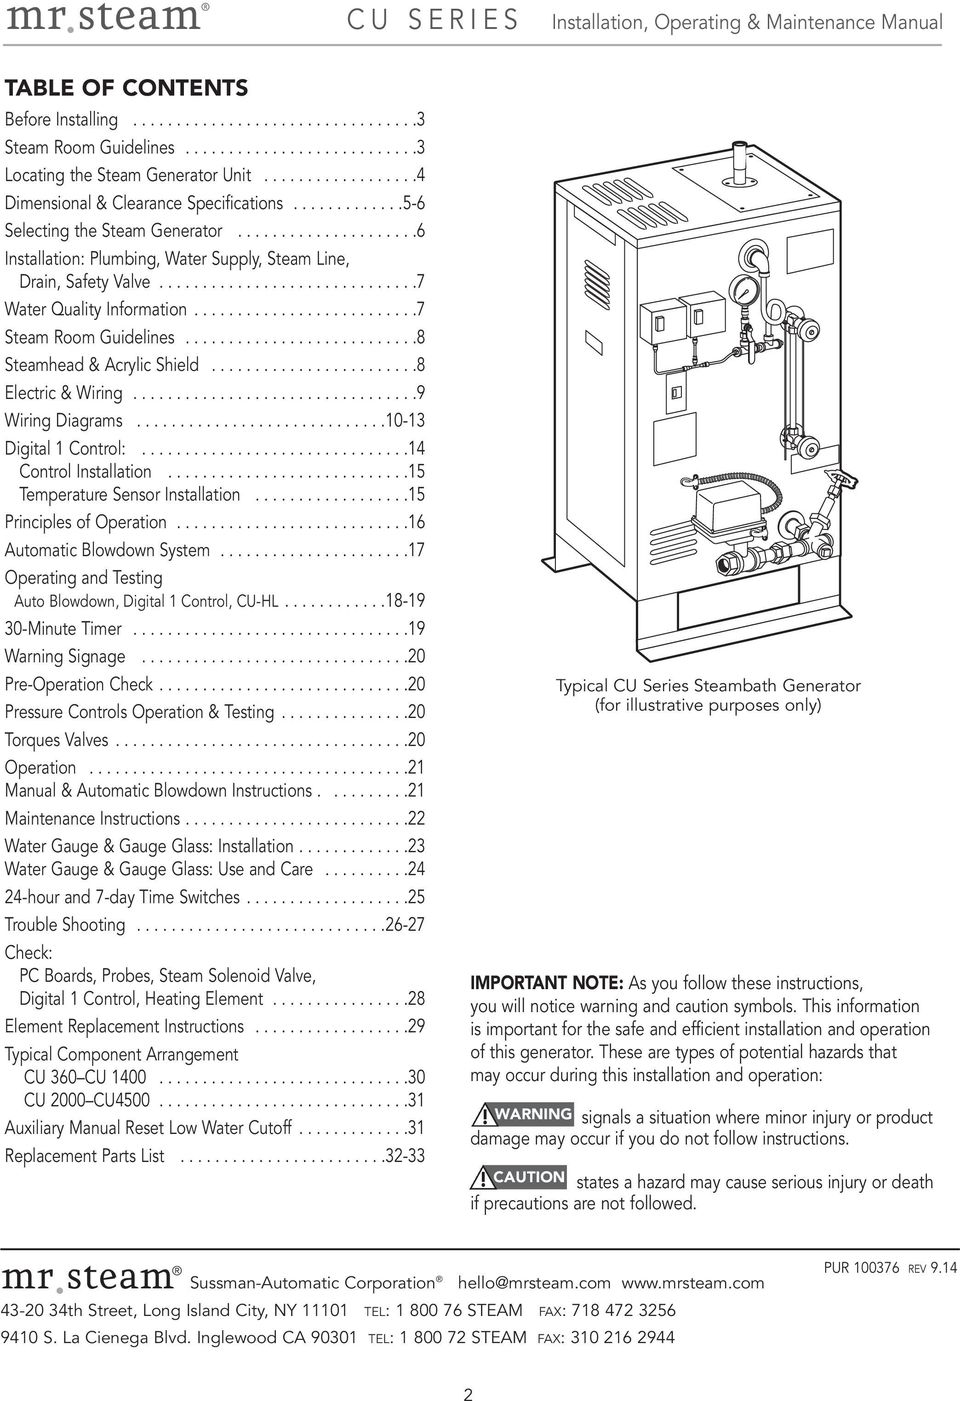 Installation Operation Maintenance Manual Mrsteam Feel Good Fireplace Gas Valve Wiring On Generator Diagram 3 Before Installing Important Take Time To Read These Instructions Thoroughly